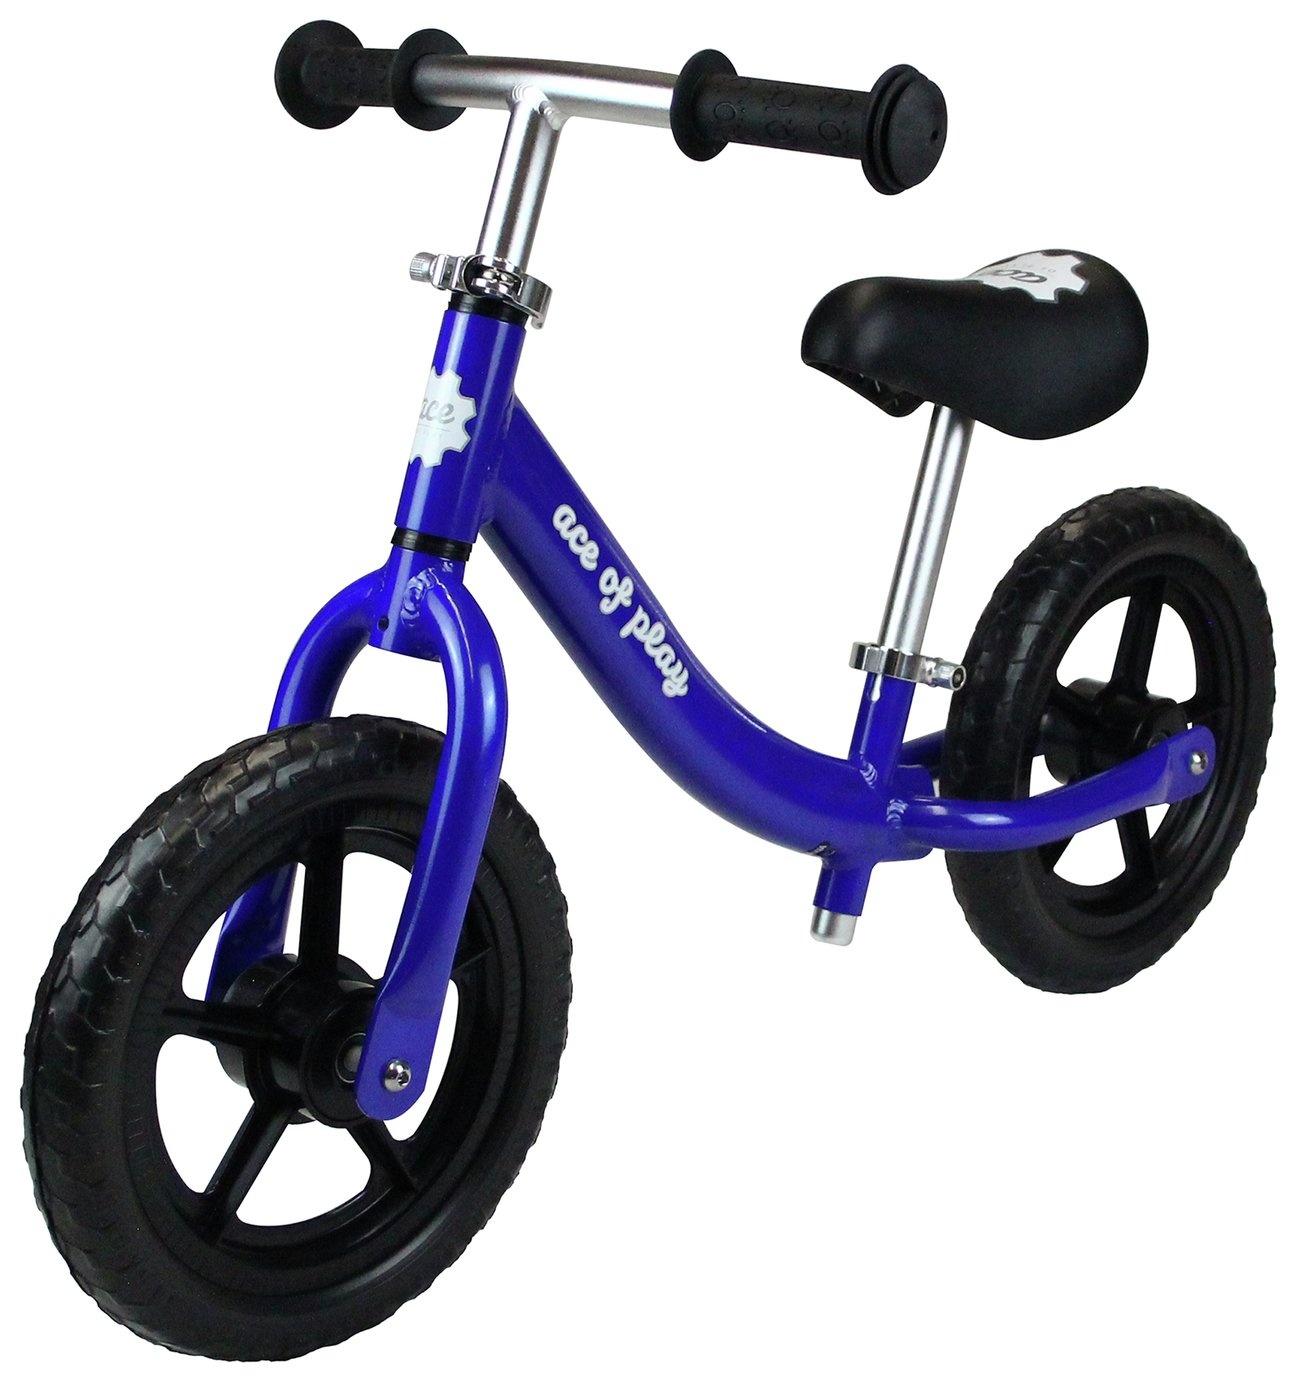 Image of Ace of Play Balance Bike - Blue.